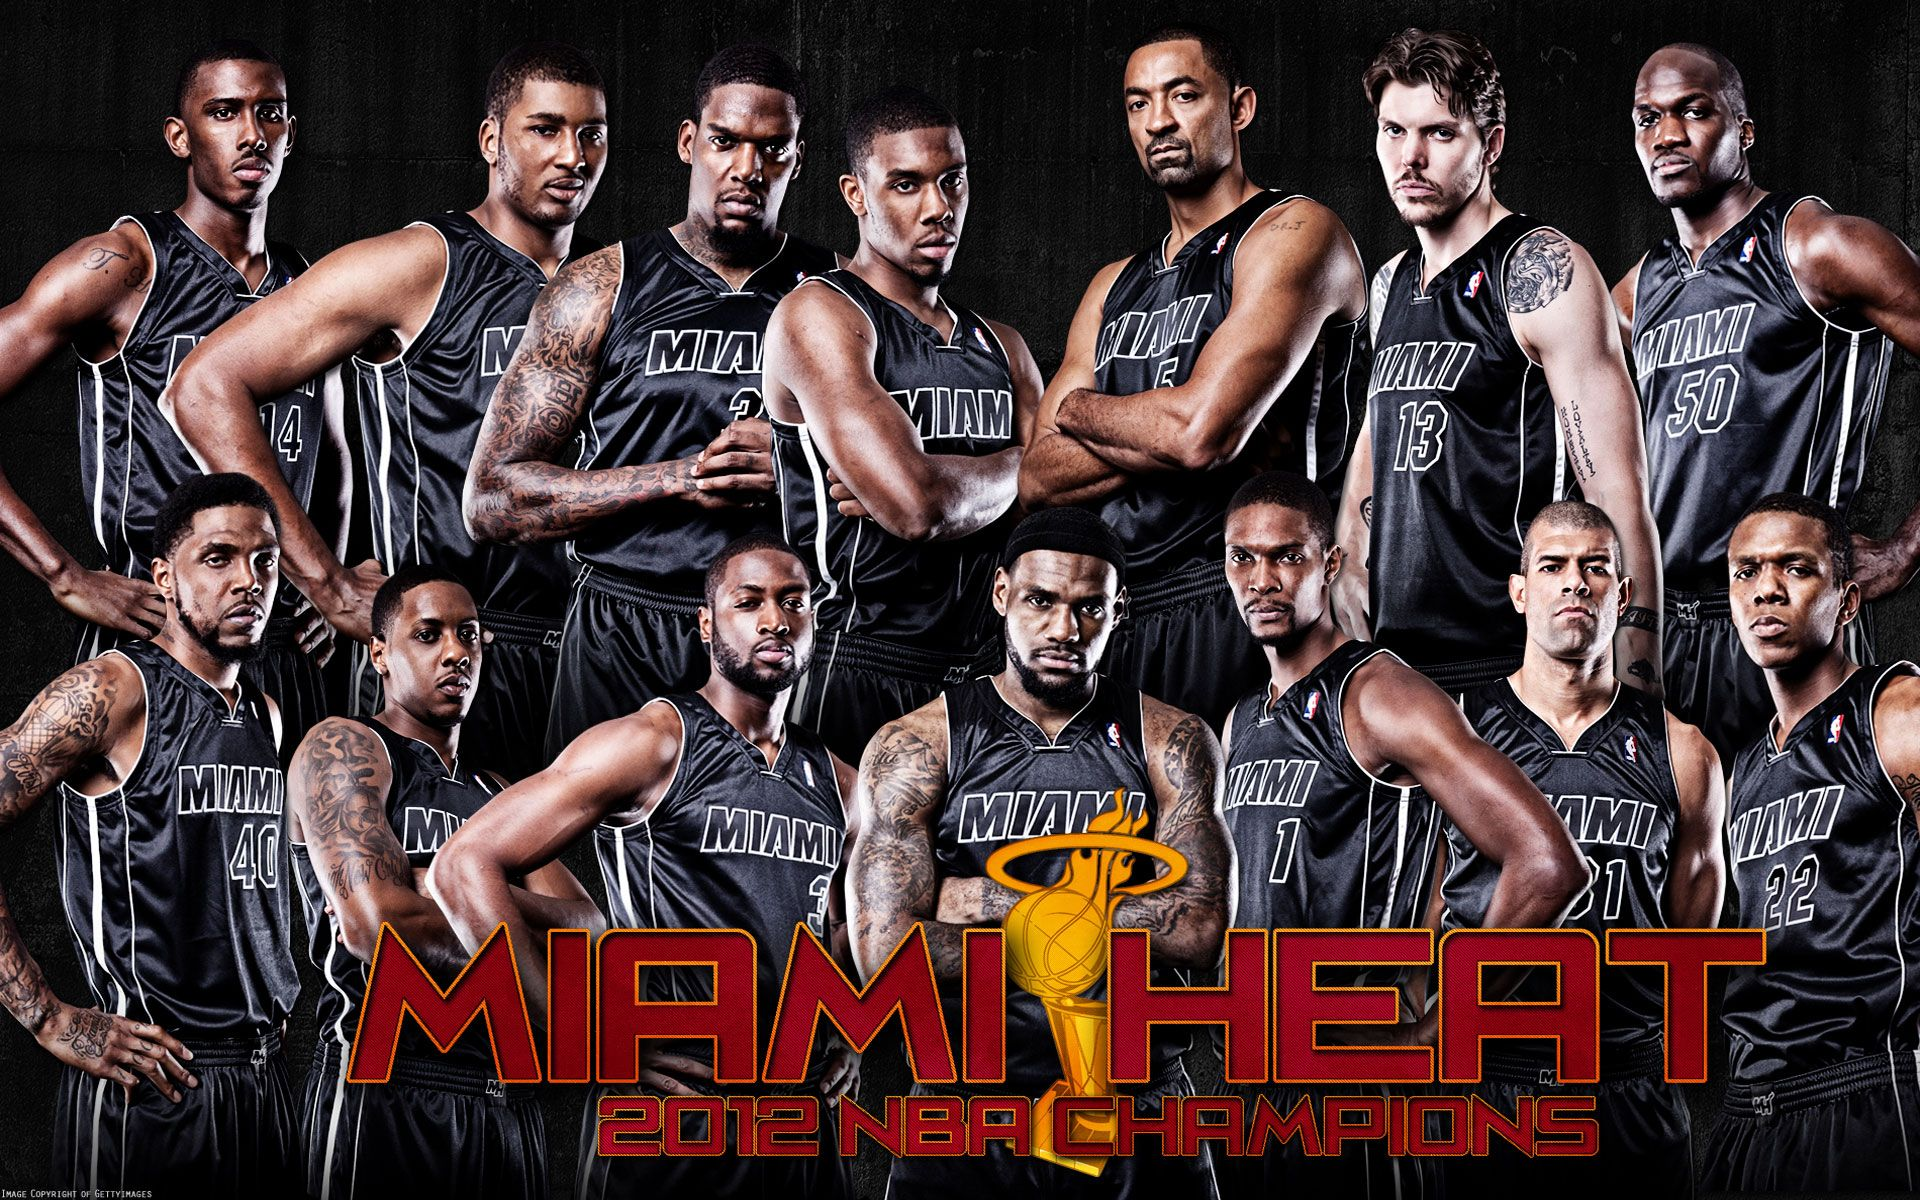 Heat Miami team pictures